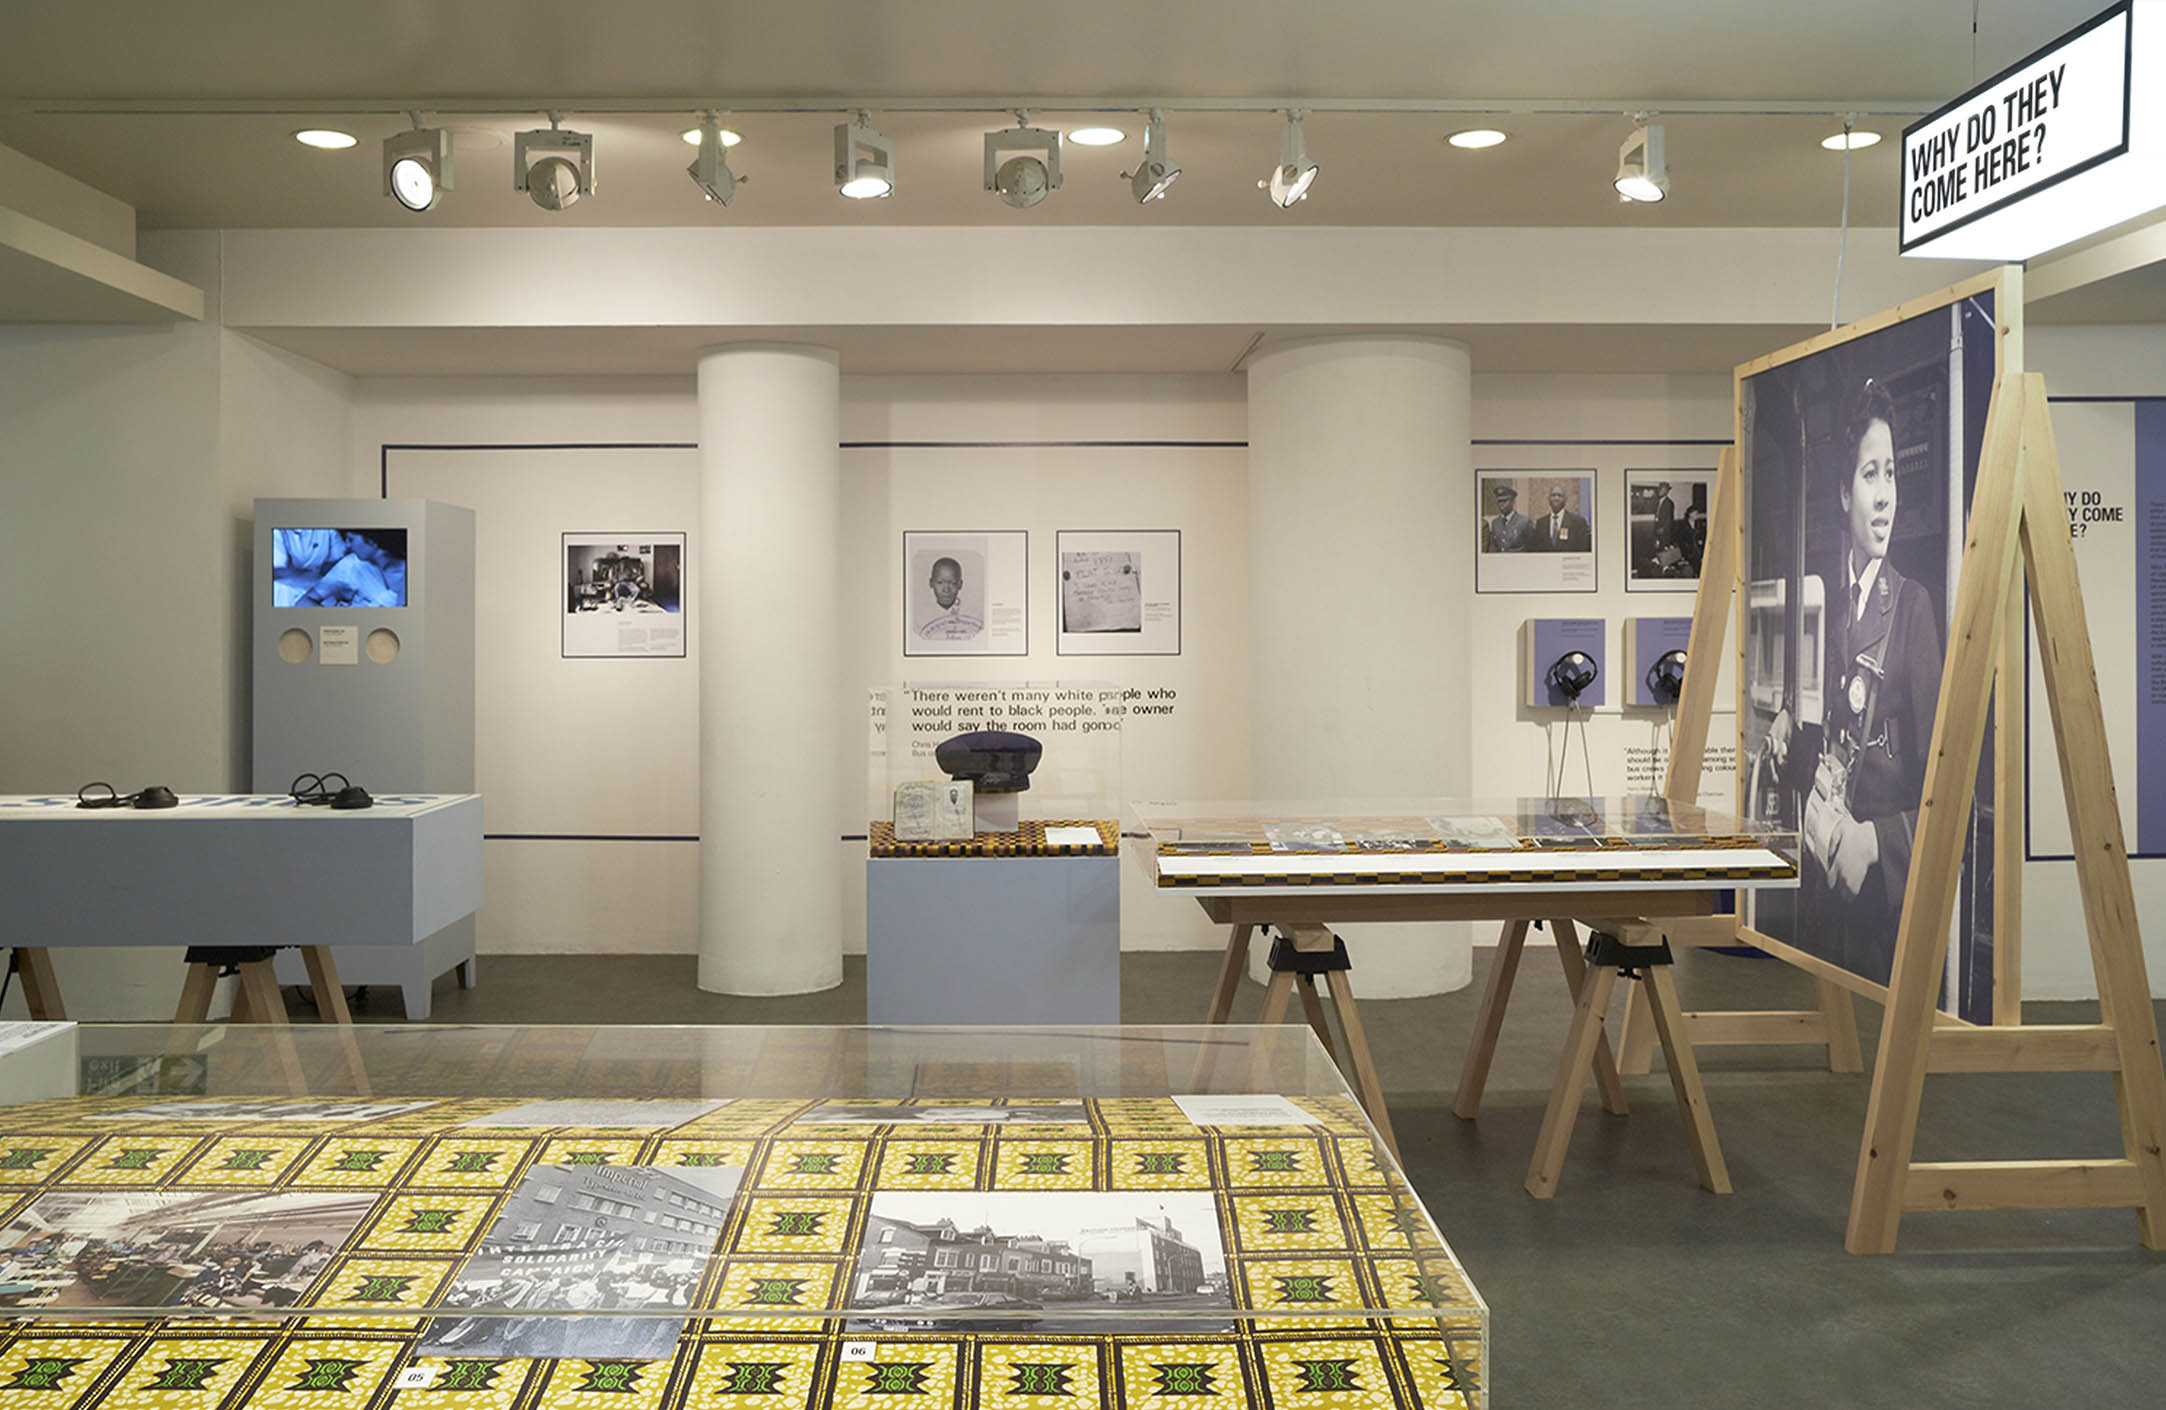 Southbank Centre Adopting Britian: 70 years of Migration